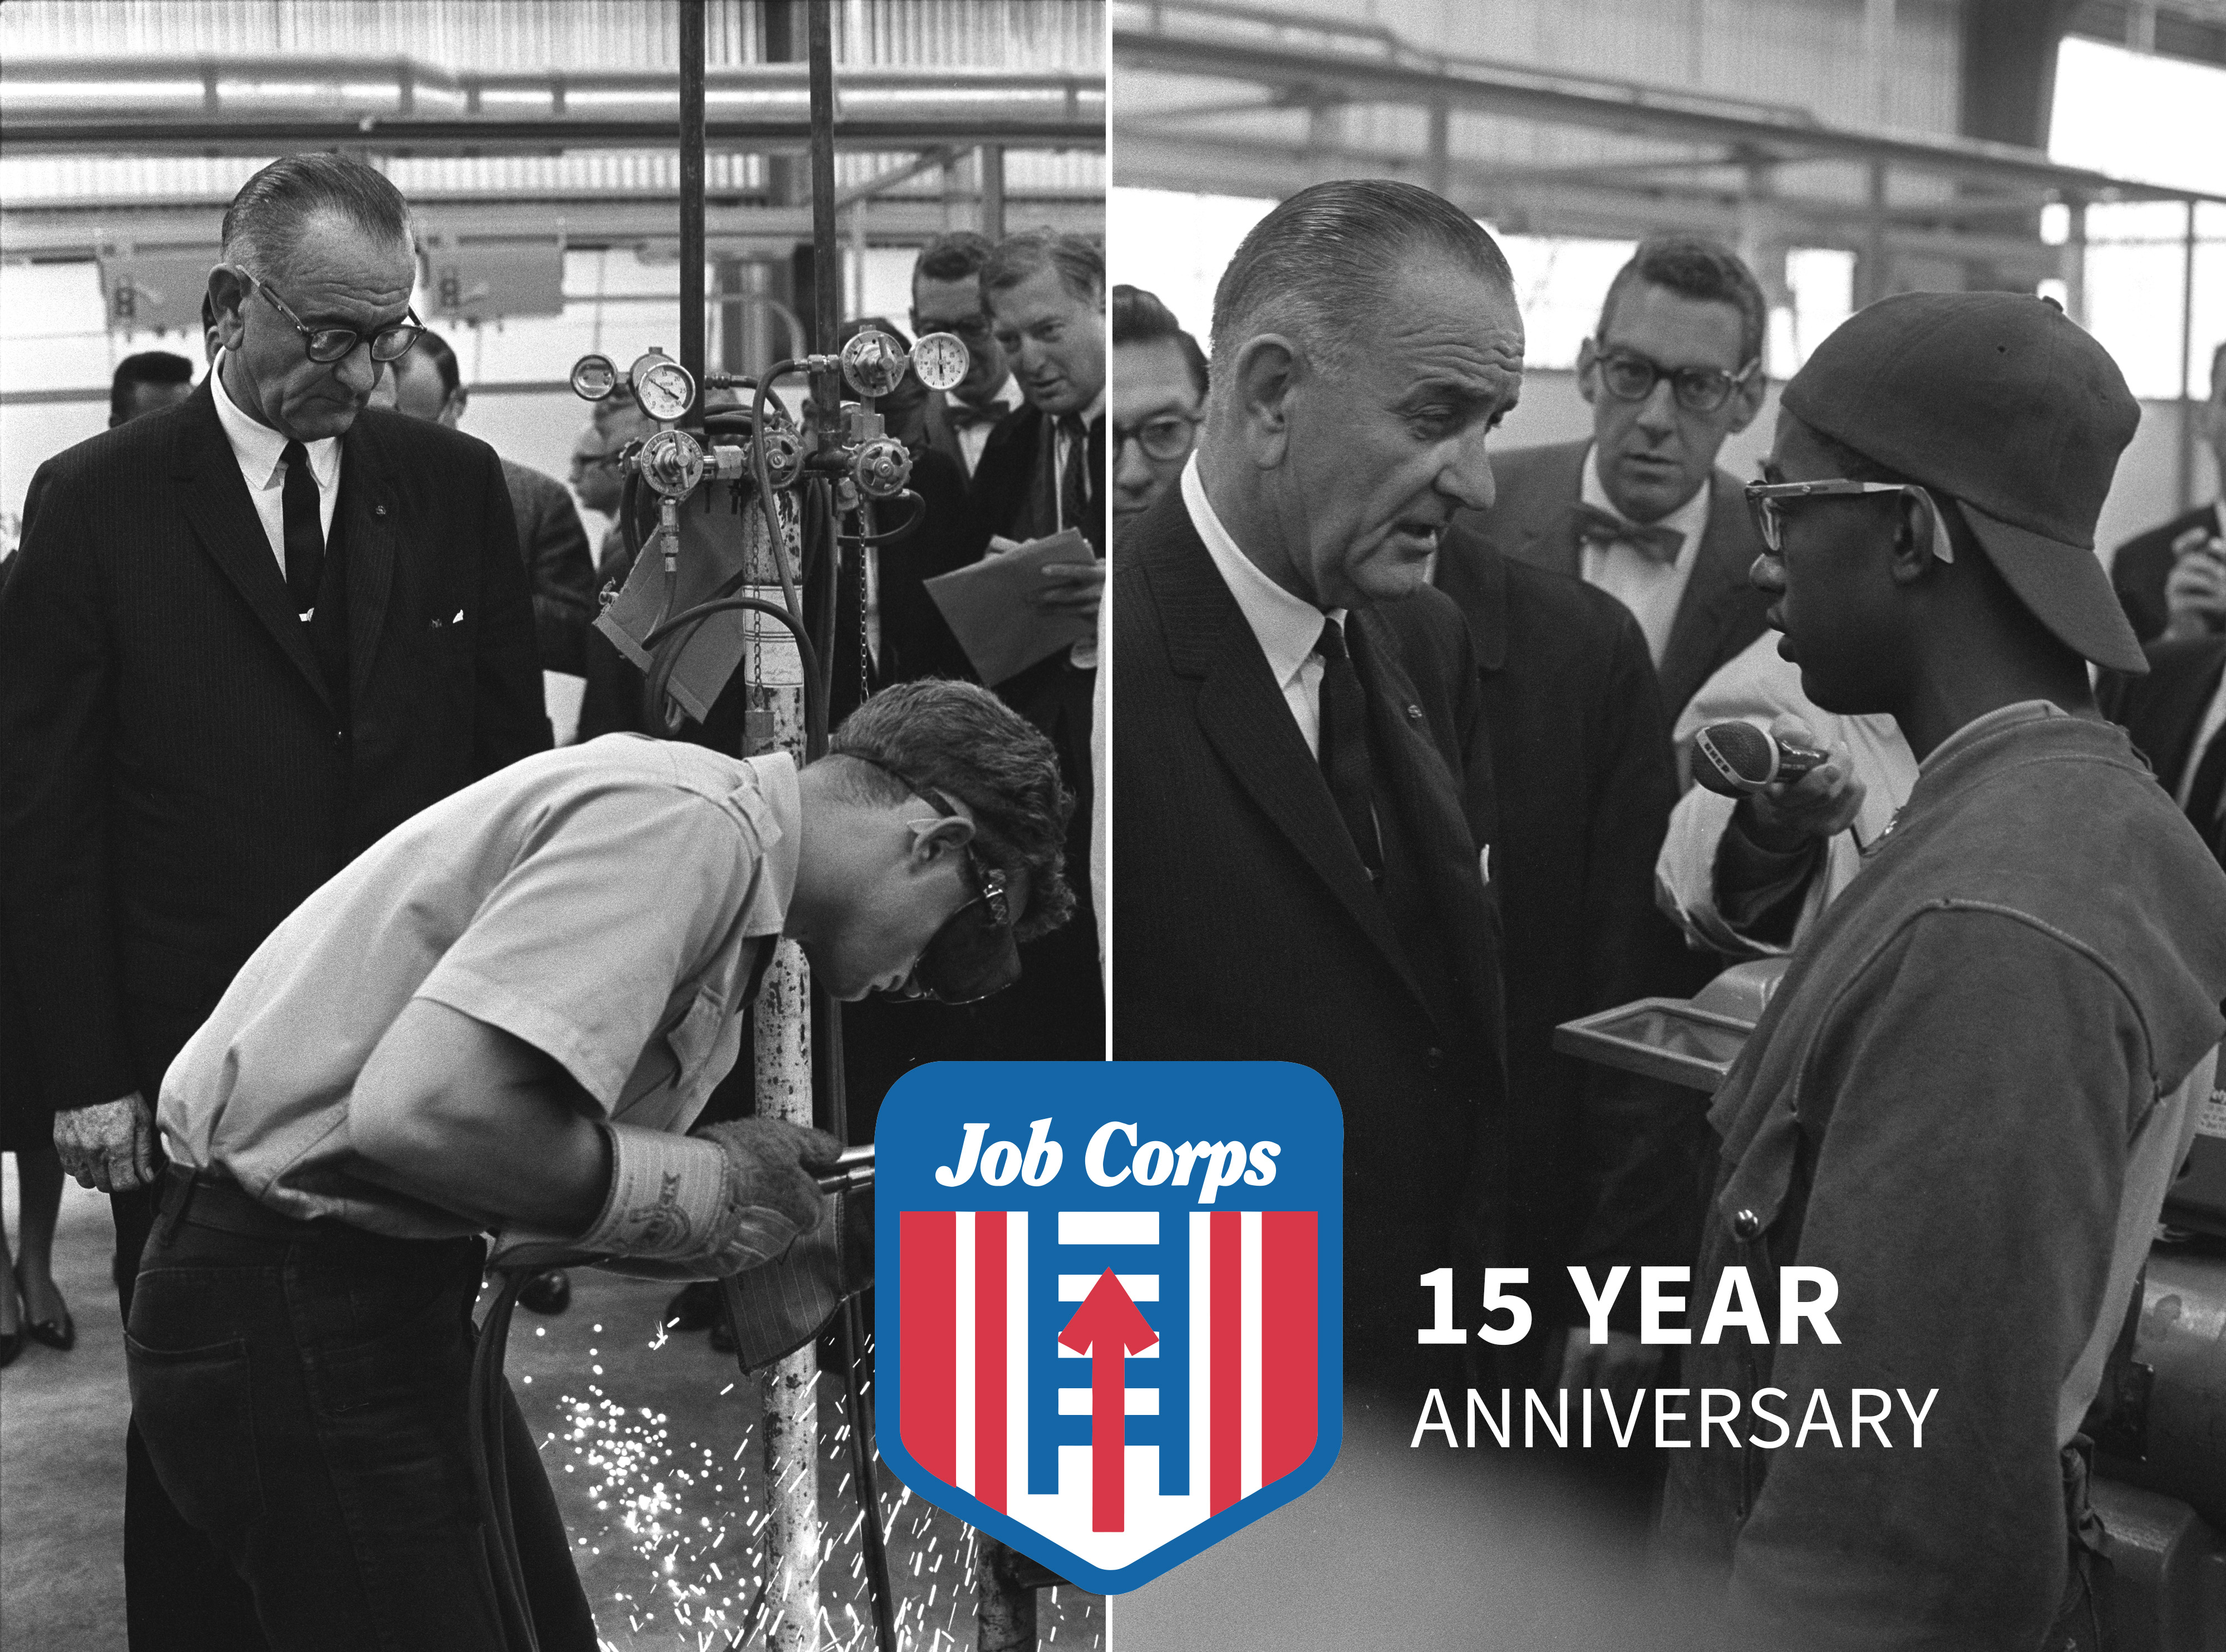 LBJ observes as Job Corps student demonstrates his new skills